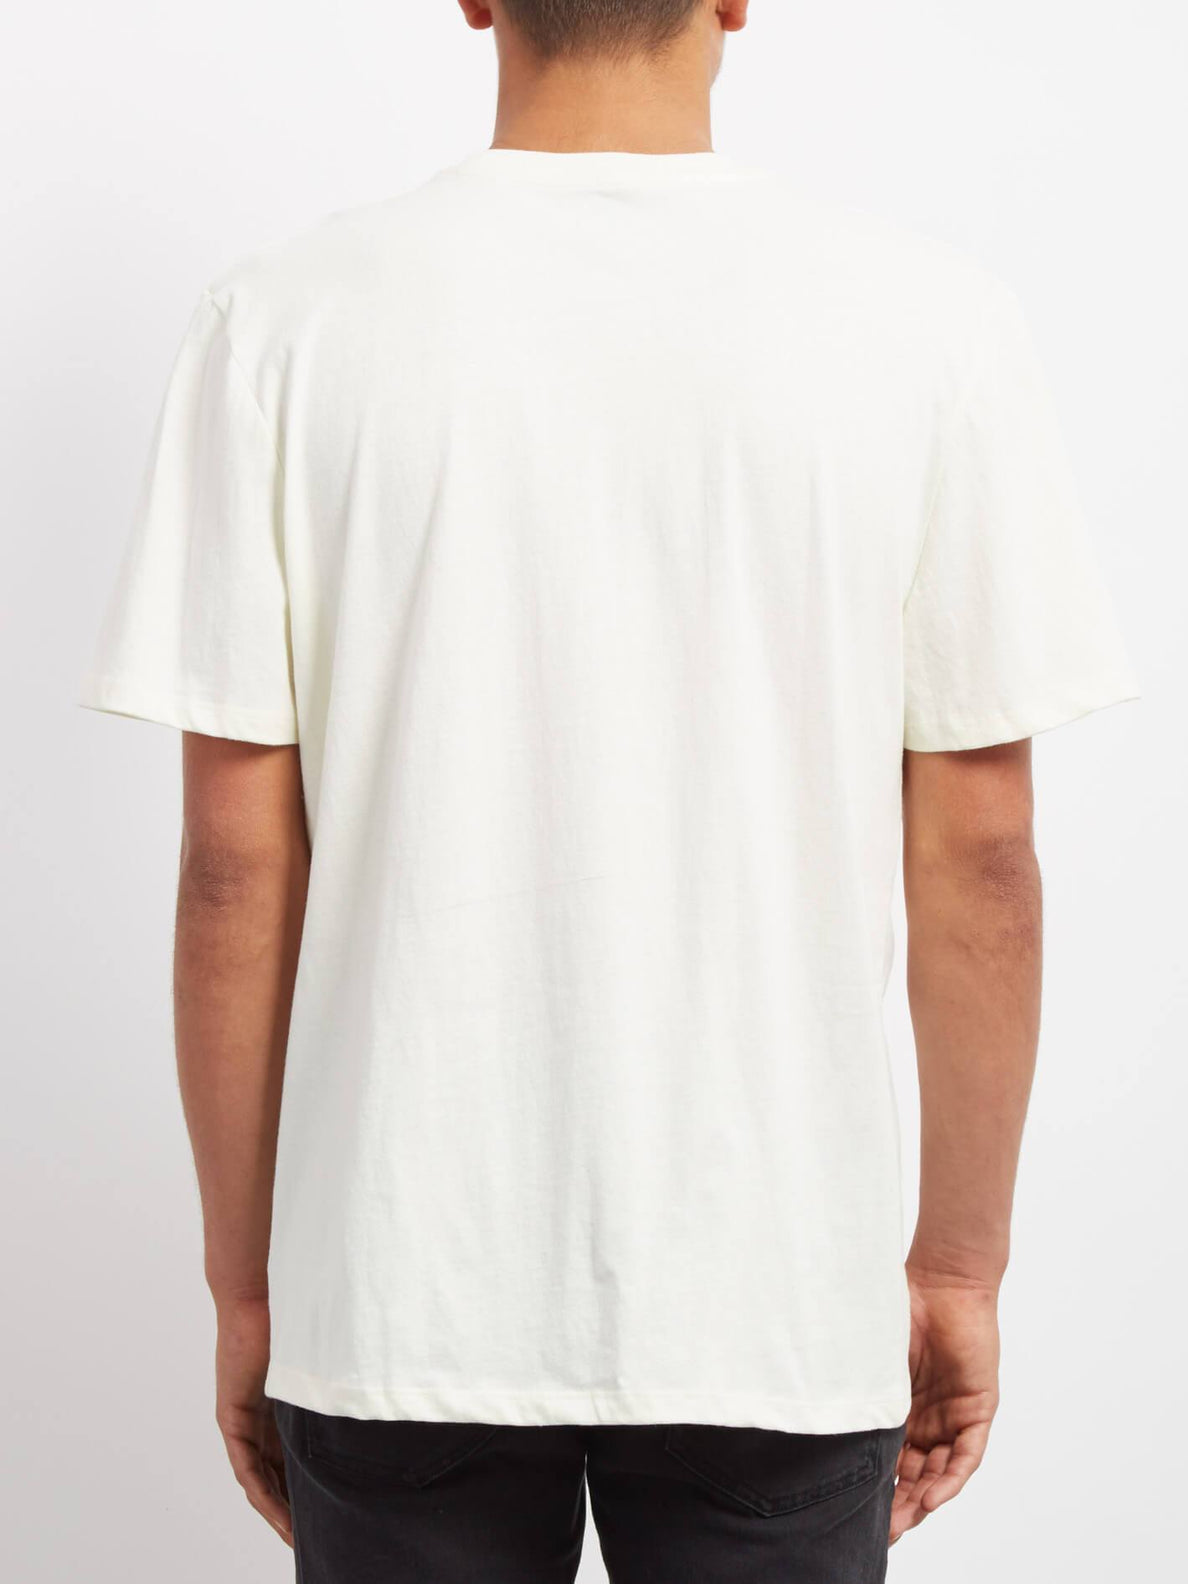 Finger   T-shirt - Dirty White